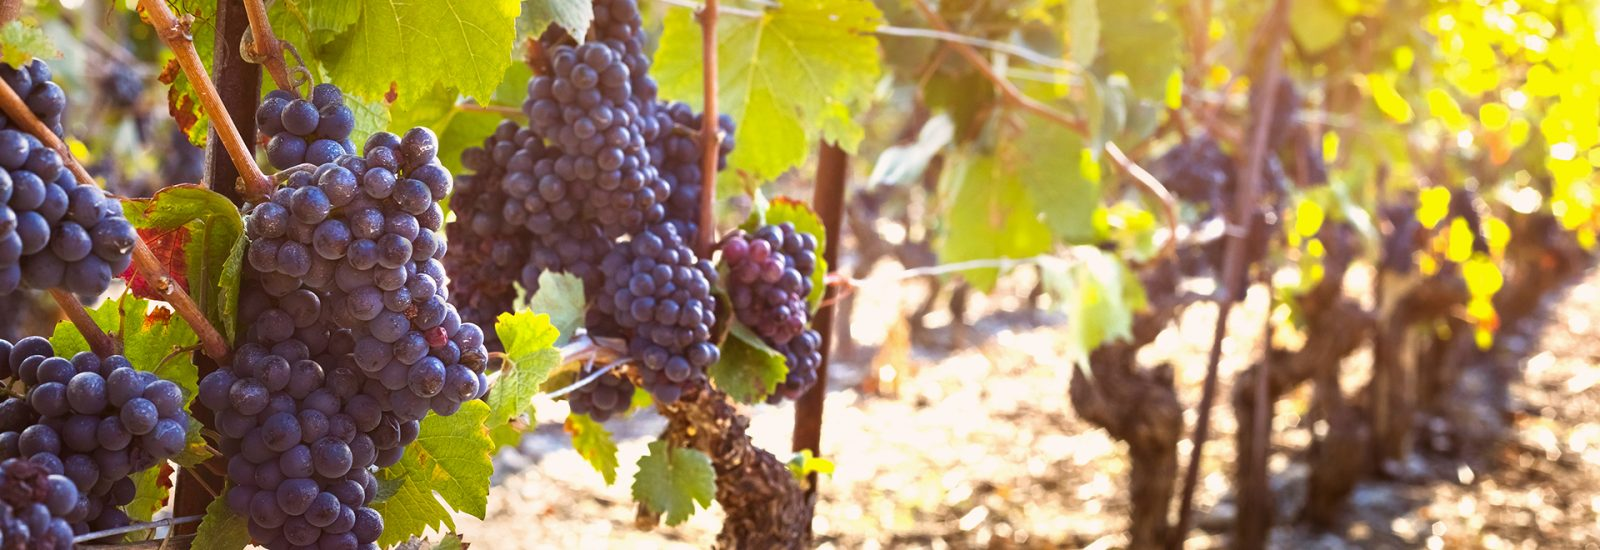 Bunch of ripe black grape, vine sunny autumn vineyards, harvest